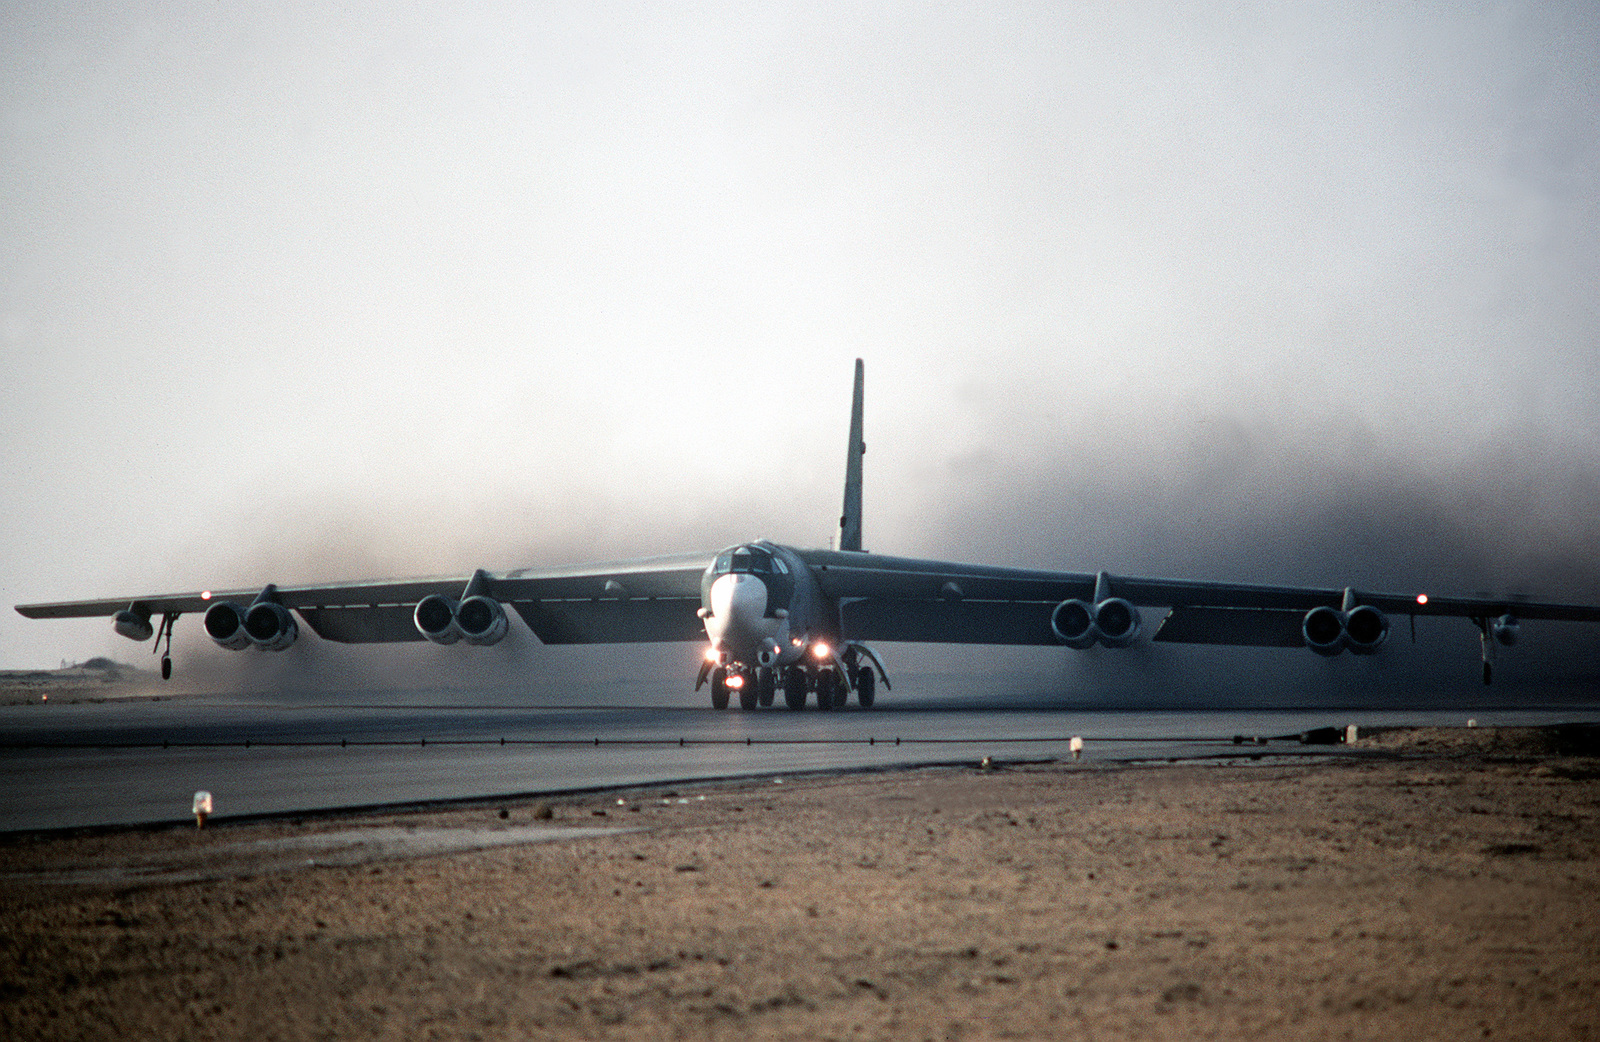 A U.S. Air Force B-52 Stratofortress bomber accelerates for takeoff from Cairo West airport during BRIGHT STAR '83, the joint U.S. and Egyptian military training exercise. Exact Date Shot Unknown